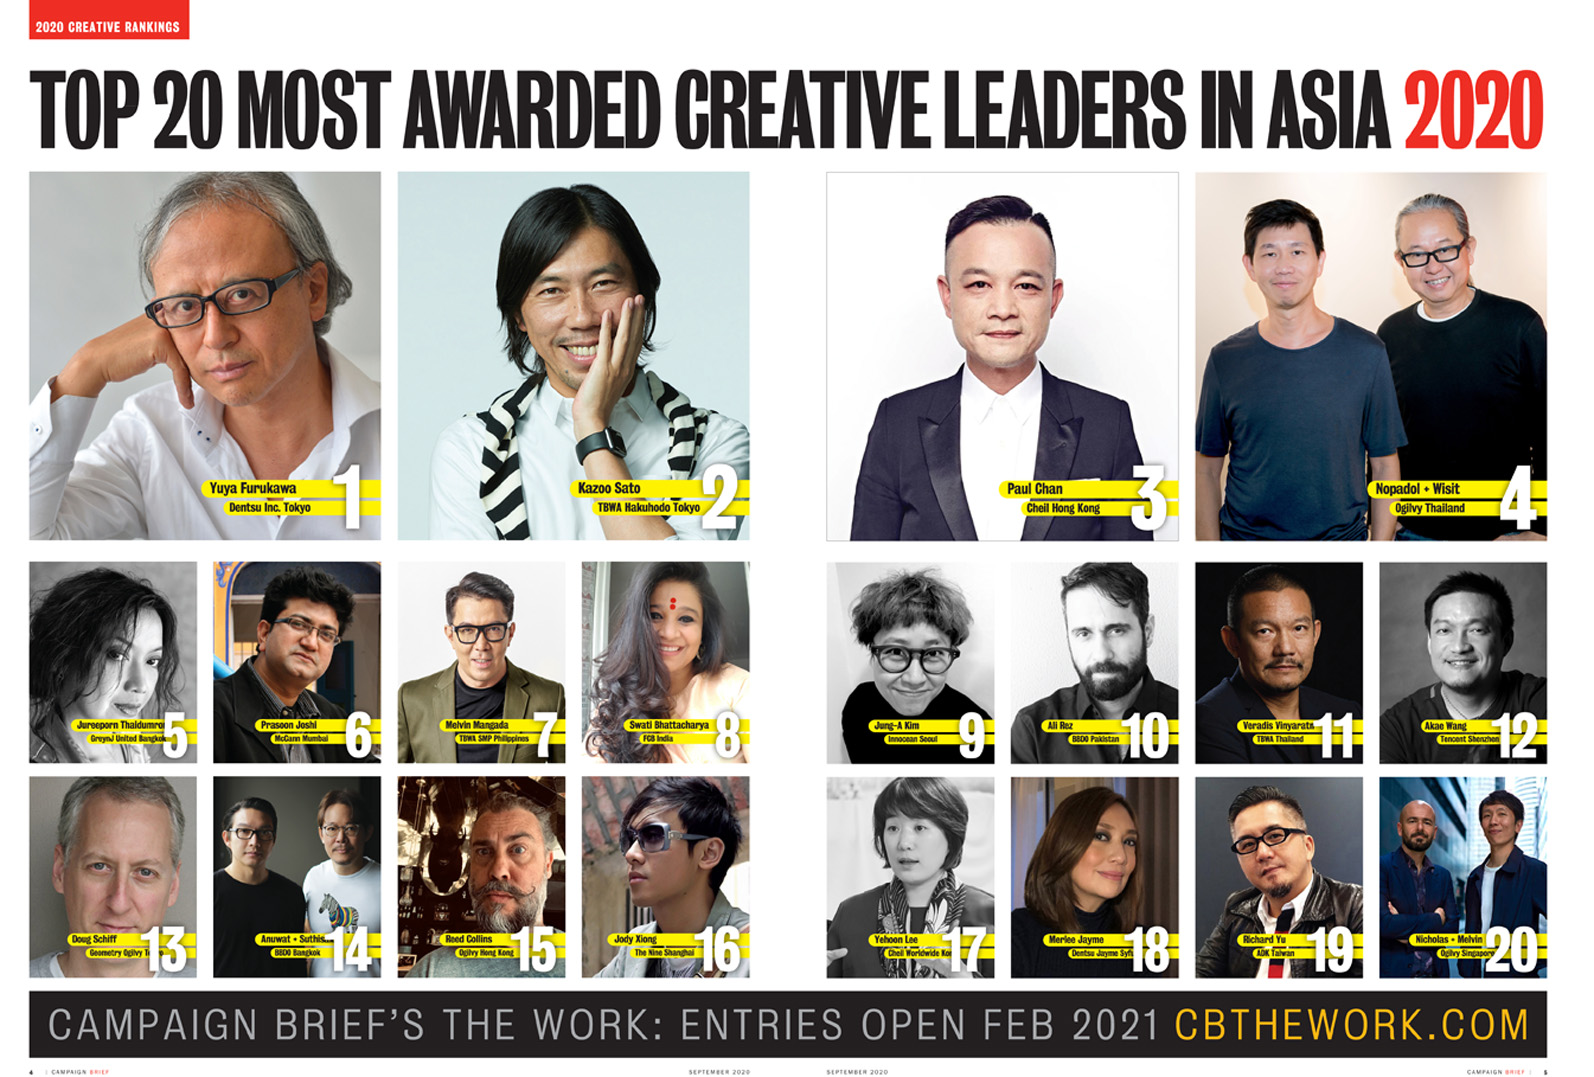 Download the complete 2020 Campaign Brief Asia Creative Rankings: The 227 most awarded agencies + 2147 most awarded individual creatives ranked